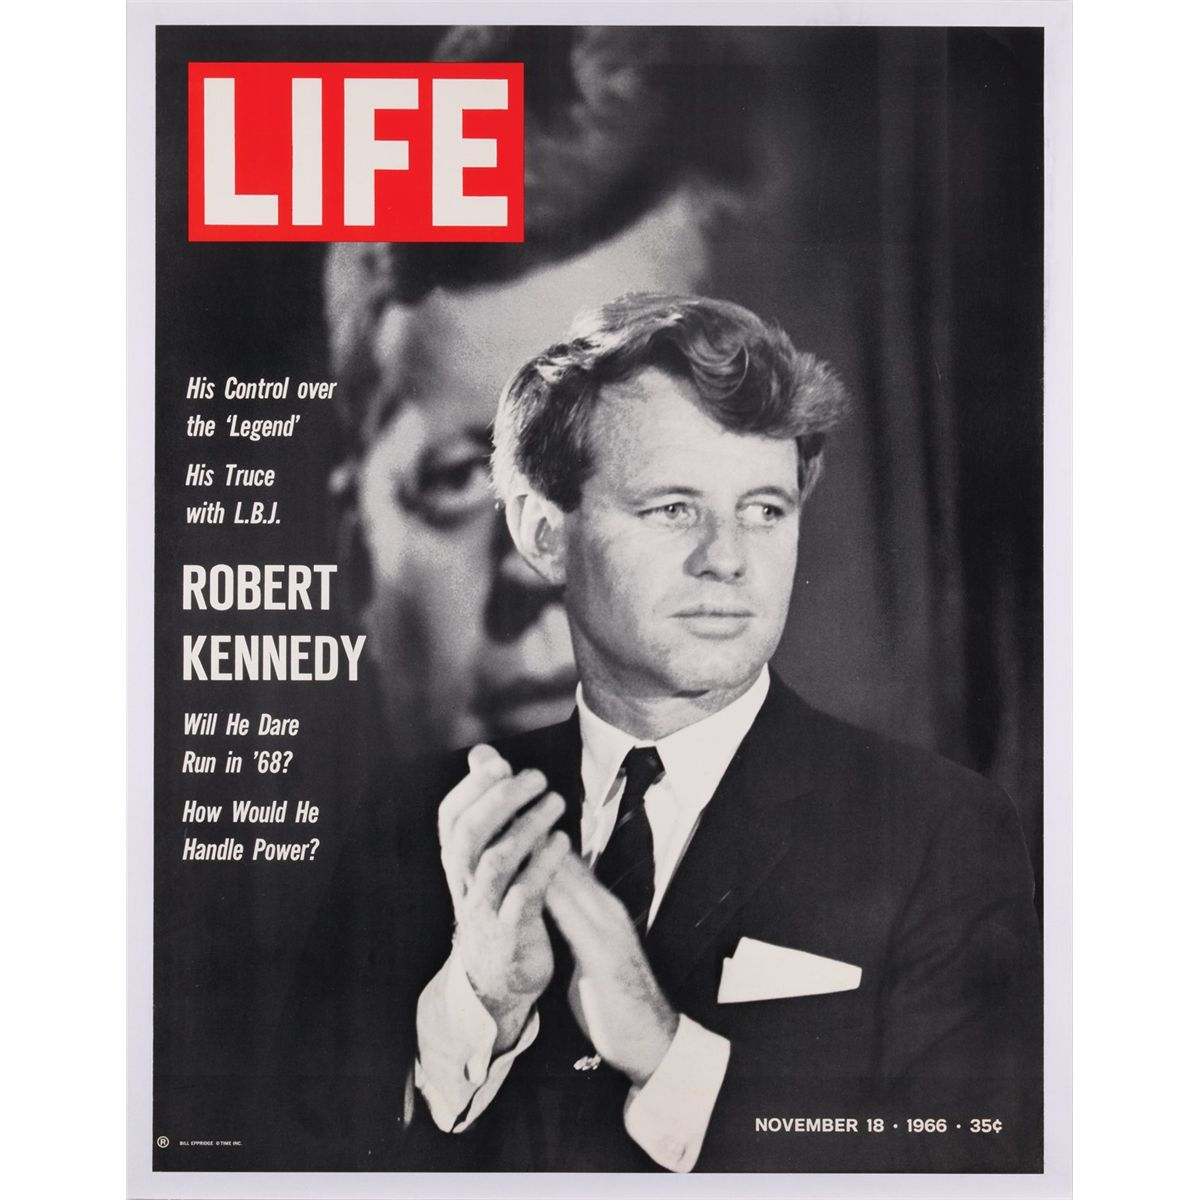 biography of robert kennedy Robert francis kennedy was a famous politician of usa in the 1960s he was the younger brother of the us president john f kennedy he served as a senator for new york for three years and.